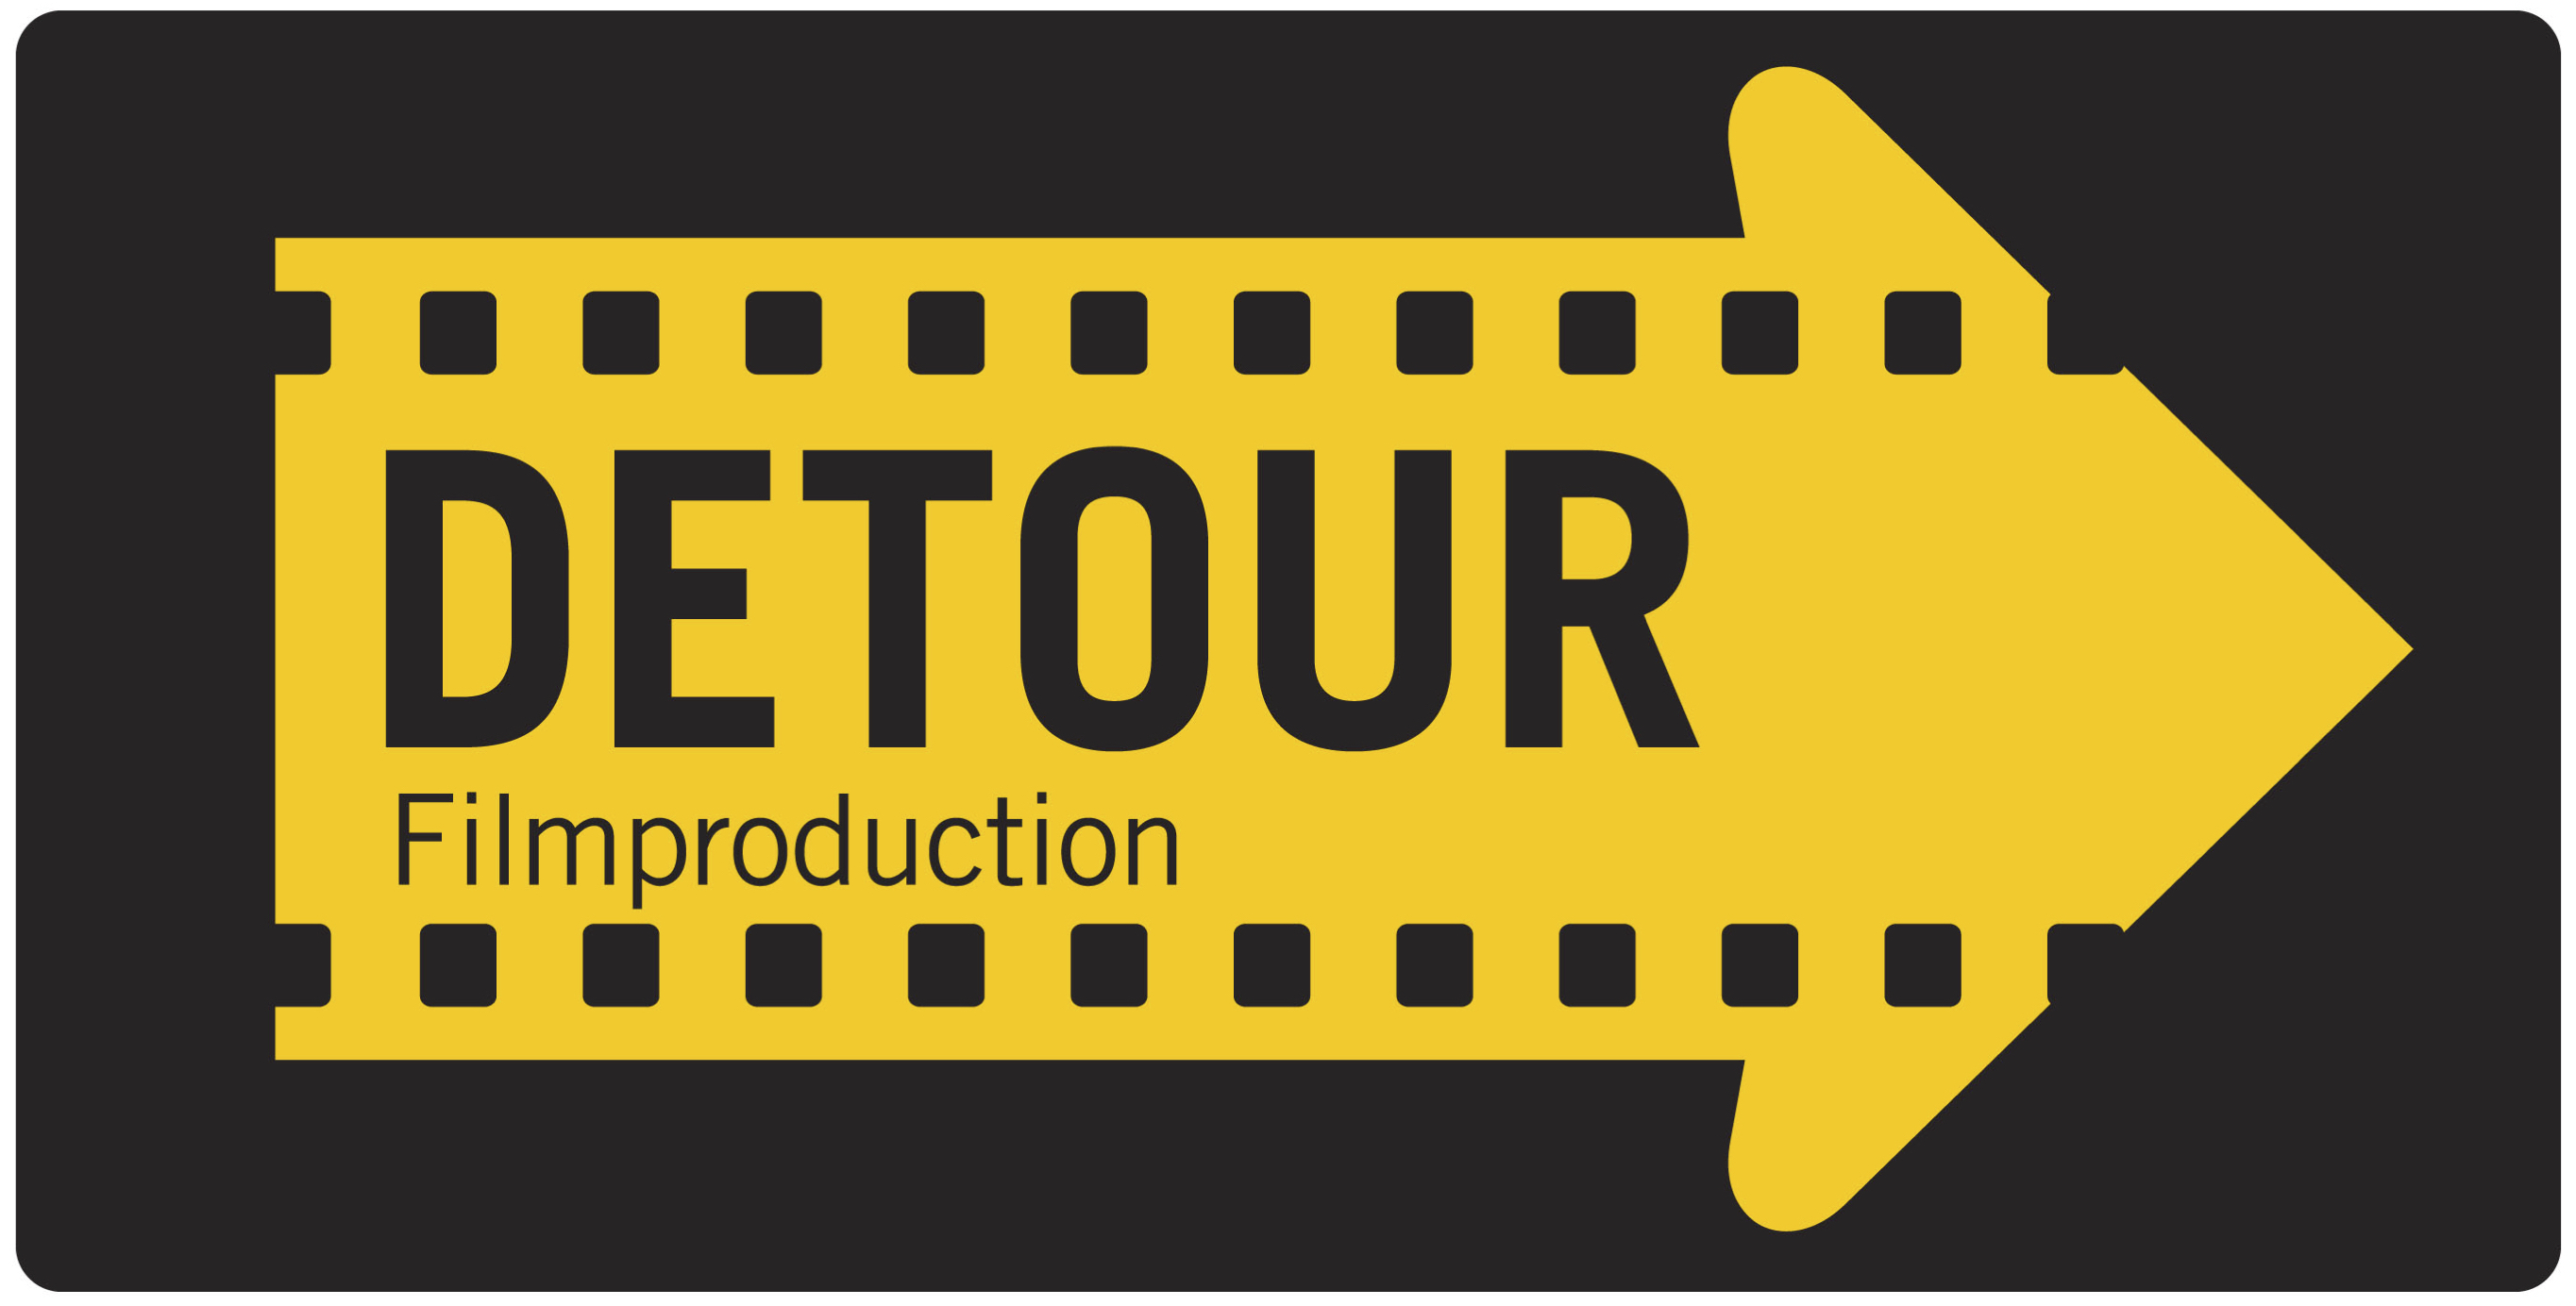 Detour Filmproduction